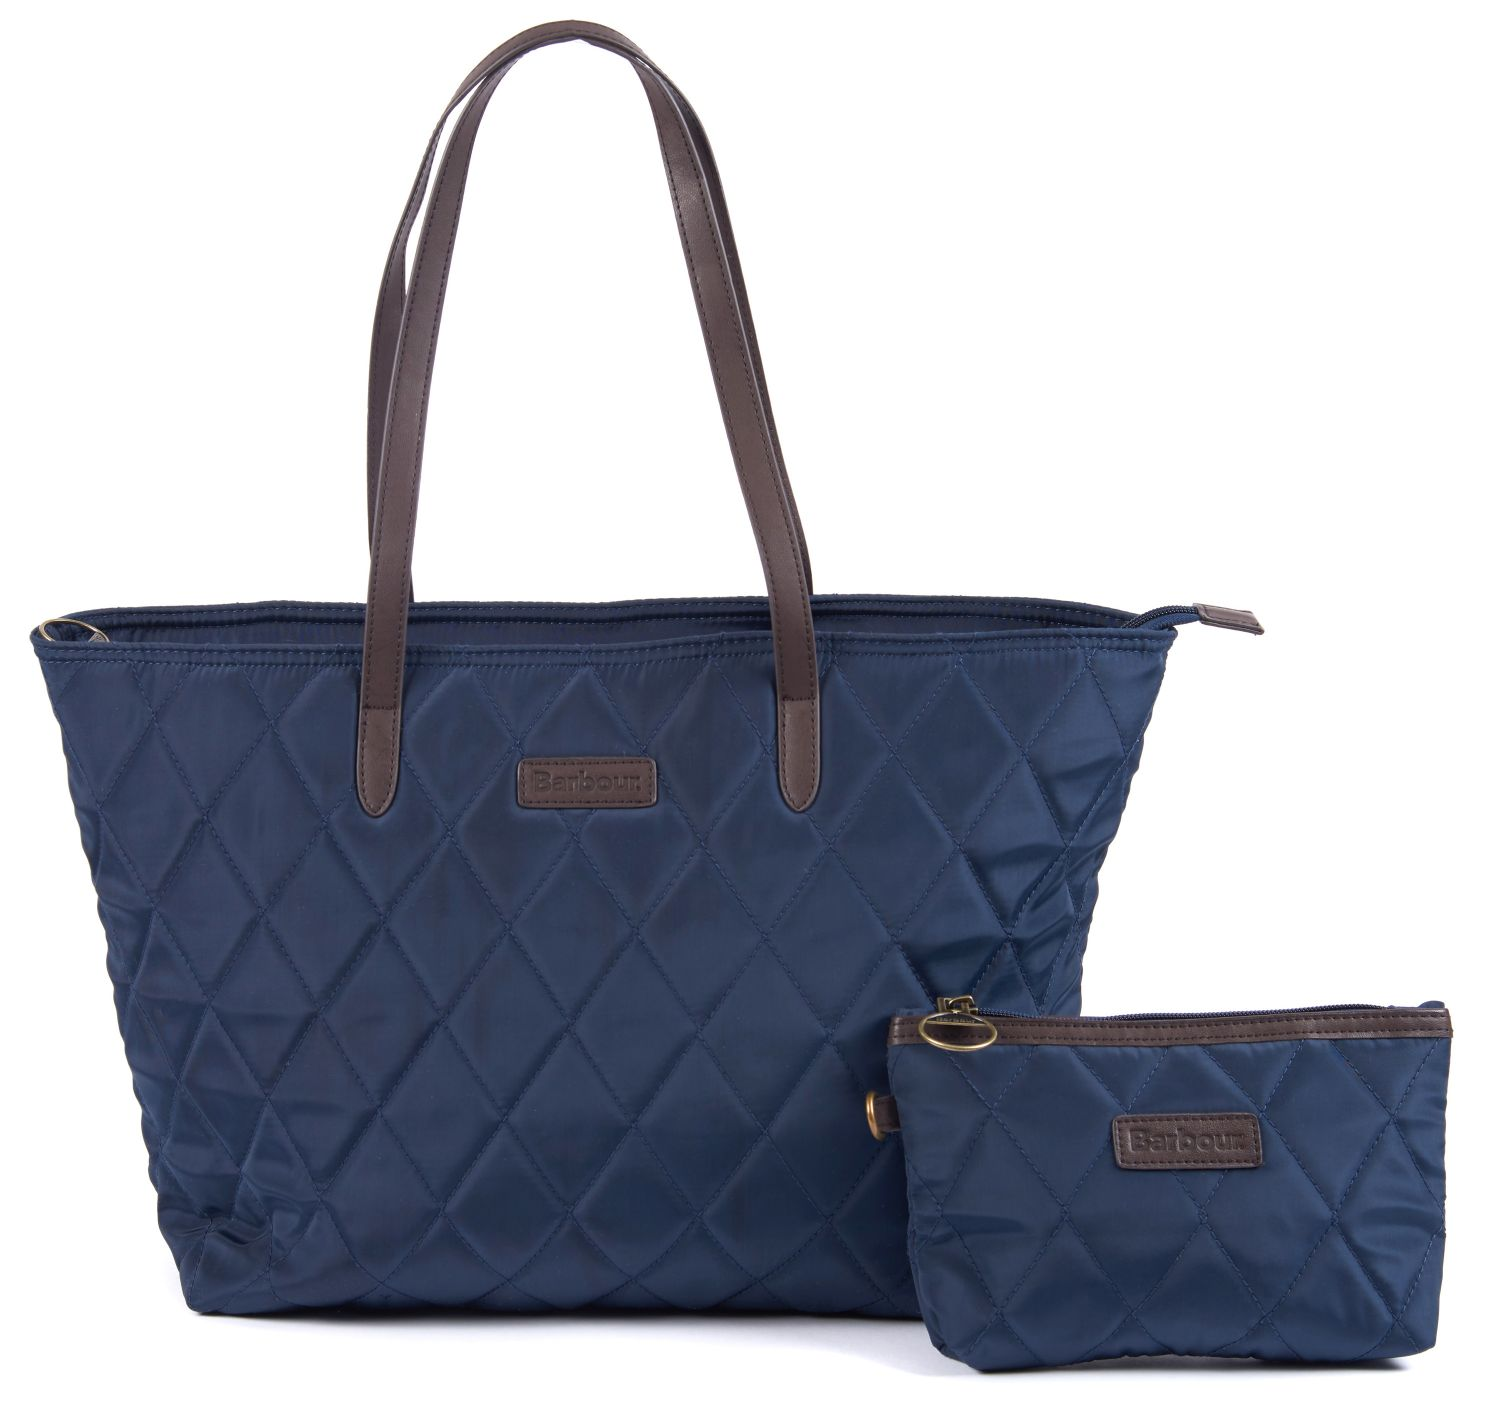 Barbour Witford Quilted Tote Bag Navy Barbour Lifestyle: From the Winter Tartan Collection